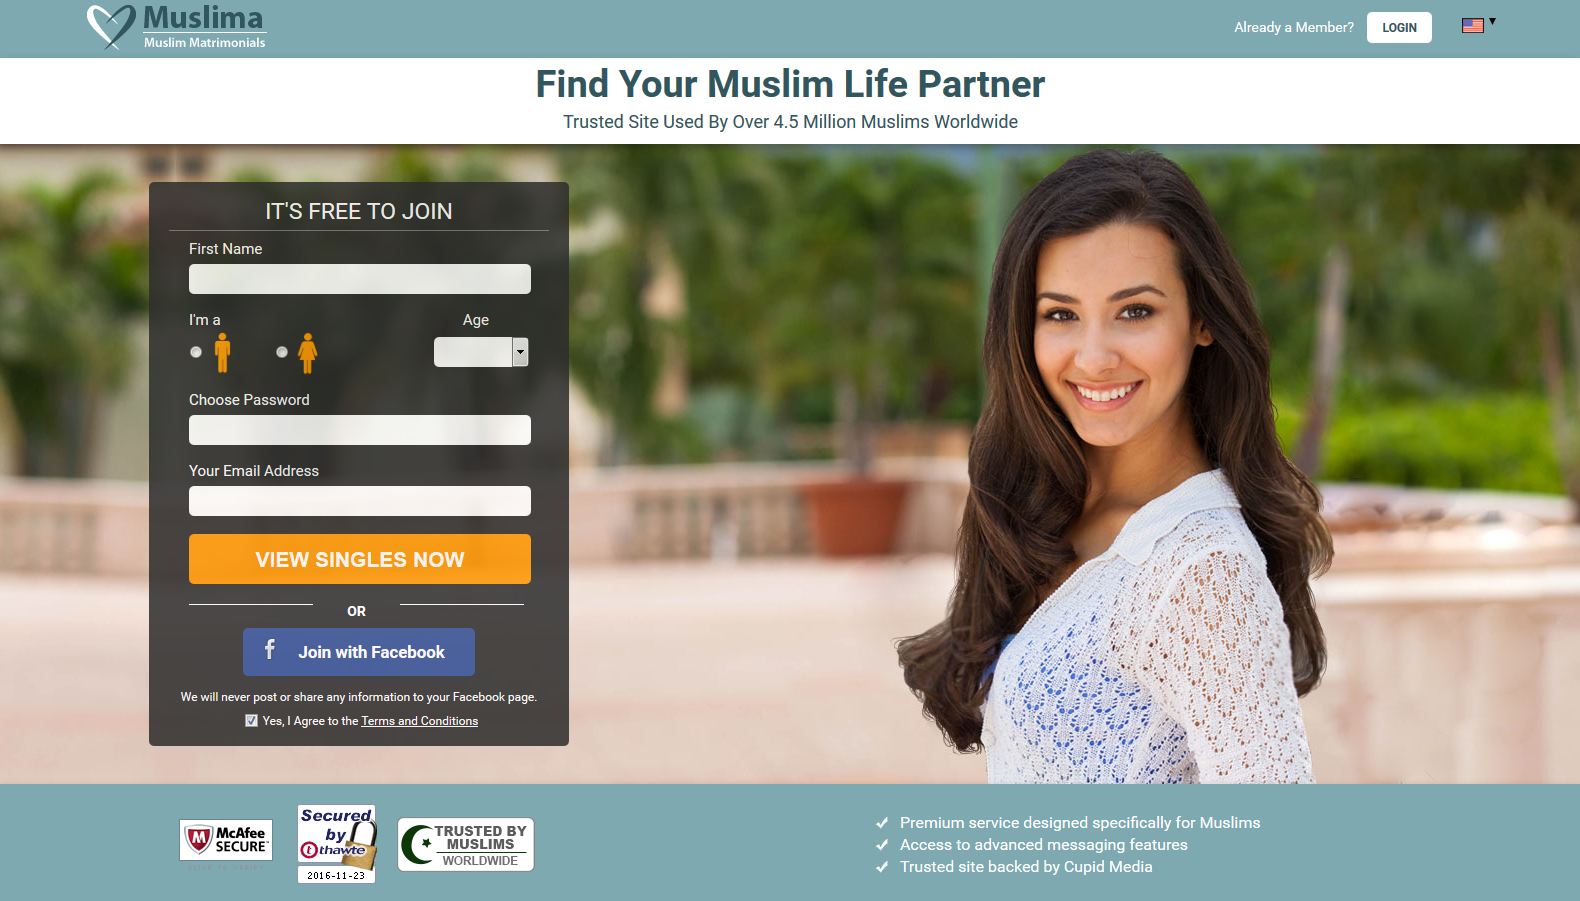 hydes muslim dating site Best muslim dating sites - visit the most popular and simplest online dating site to flirt, chart, or date with interesting people online, sign up for free best muslim dating sites they organize events such as speed dating, which bring singles together face to face, allowing them to interact and get to know each other.